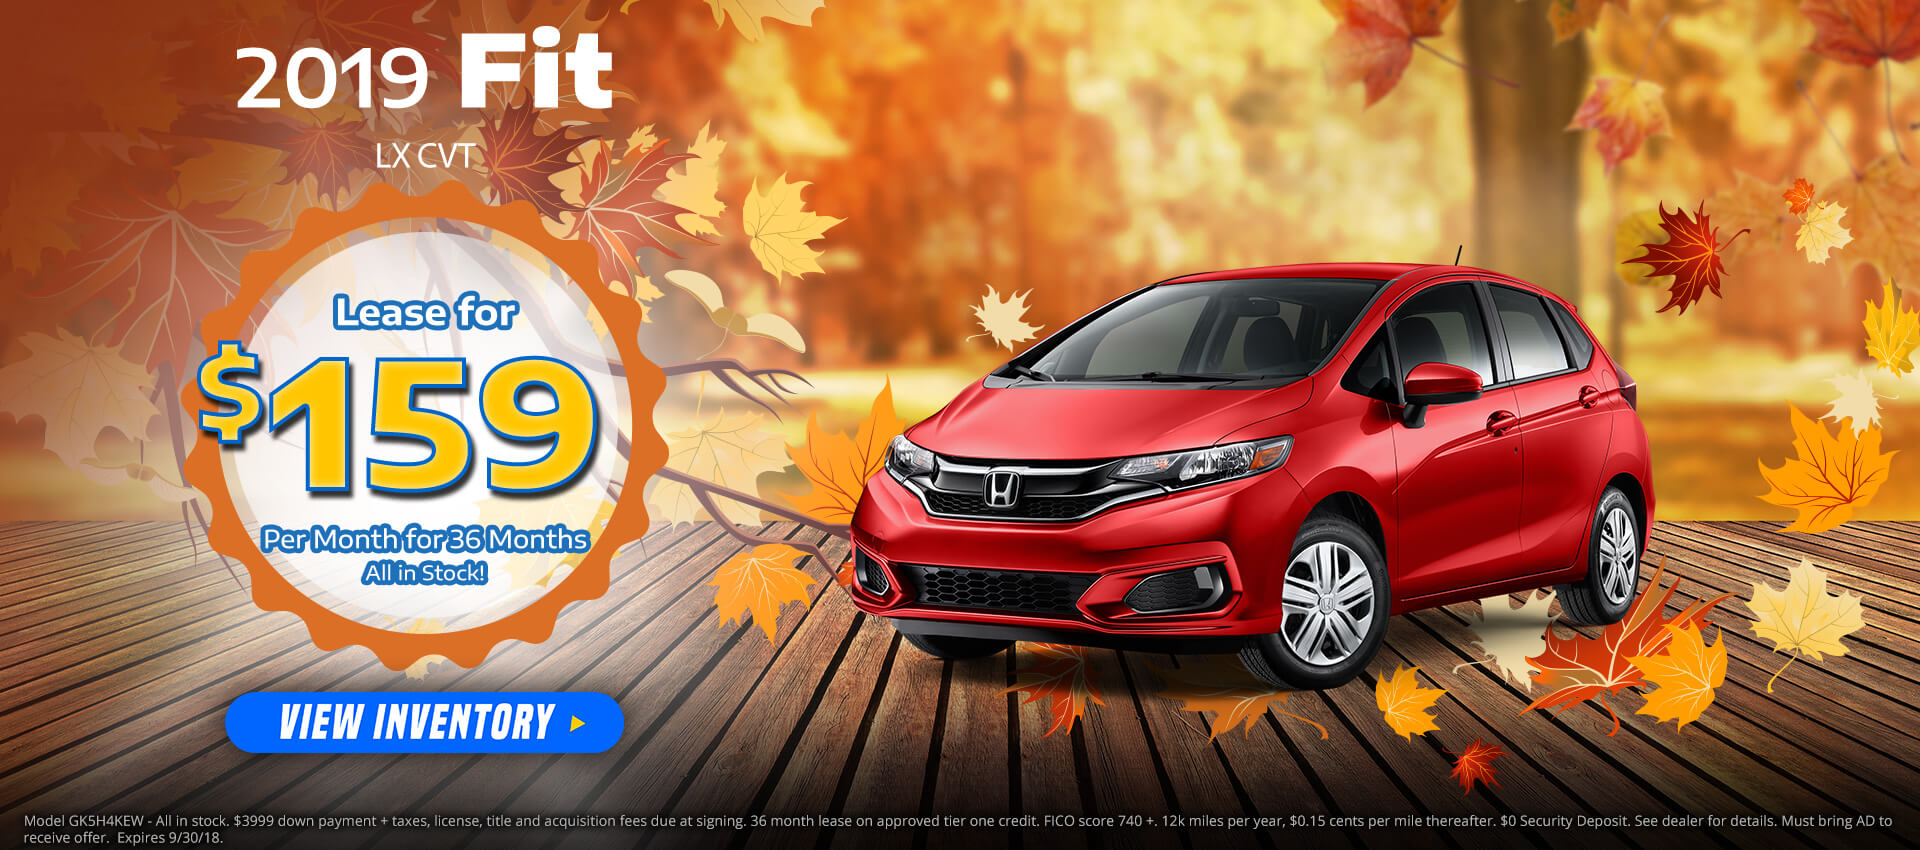 Honda Fit $159 Lease